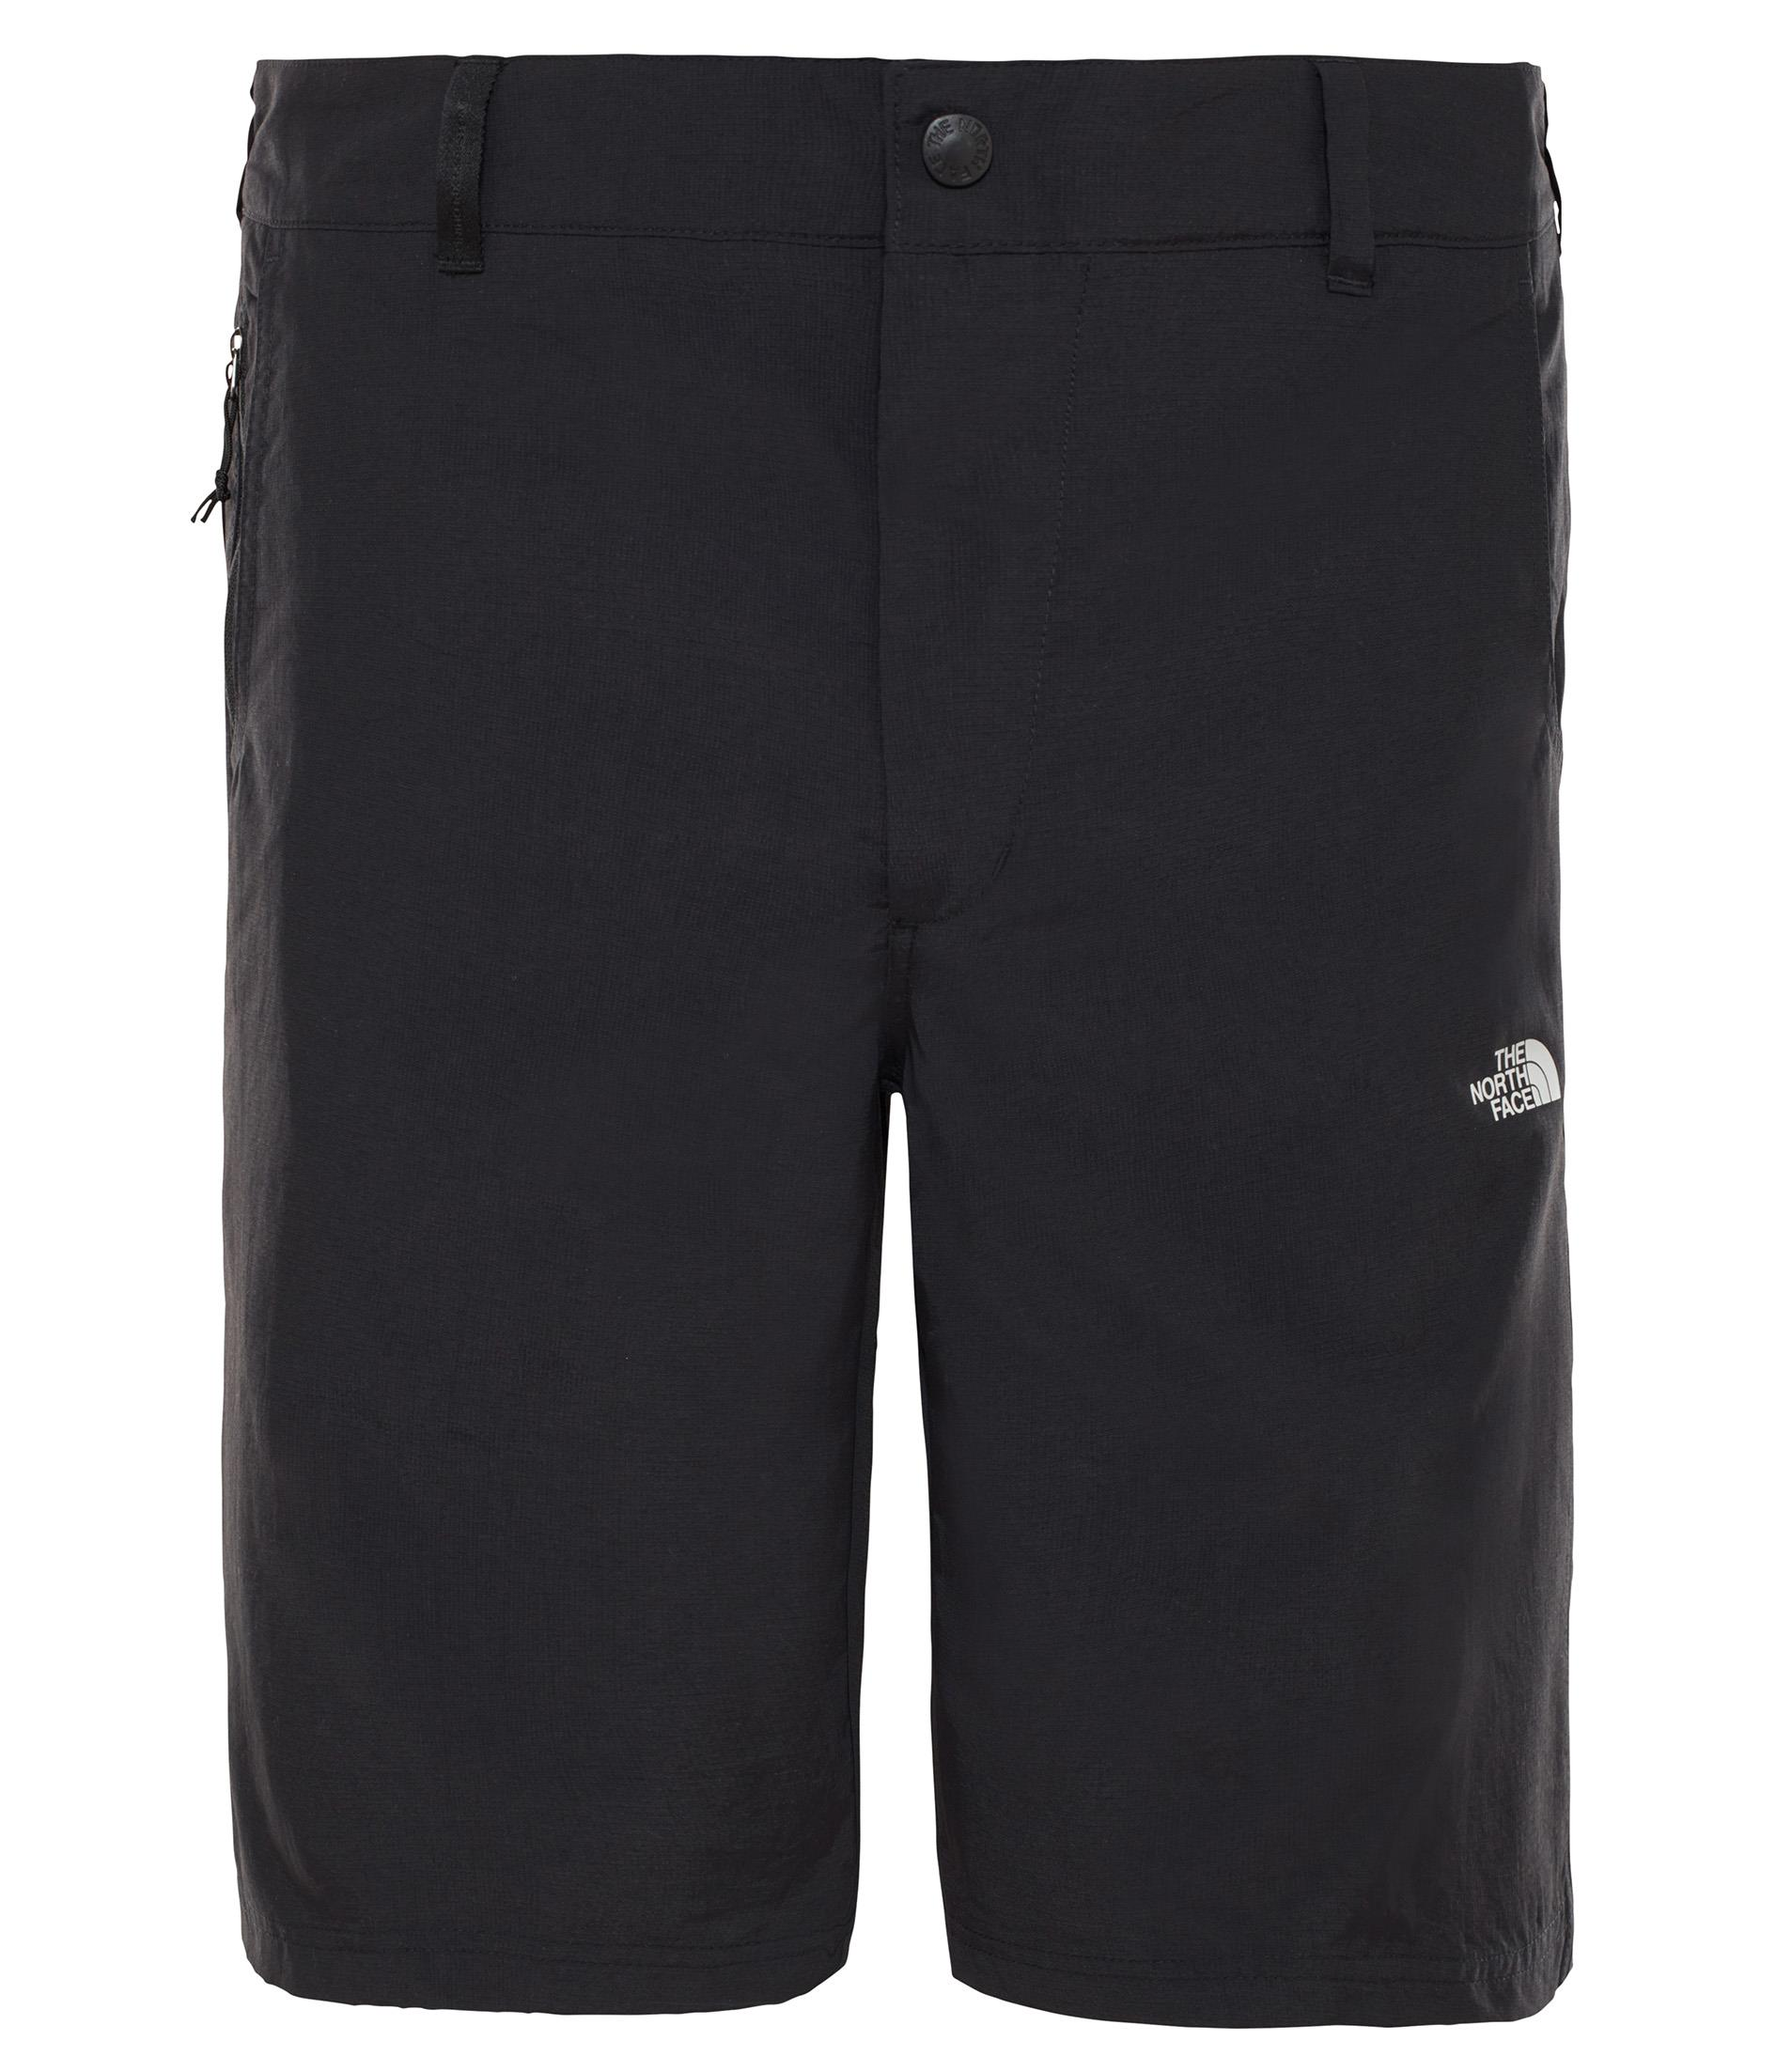 The Northface Erkek Tanken Short (Regular Fit) T92S85Jk3 Şort